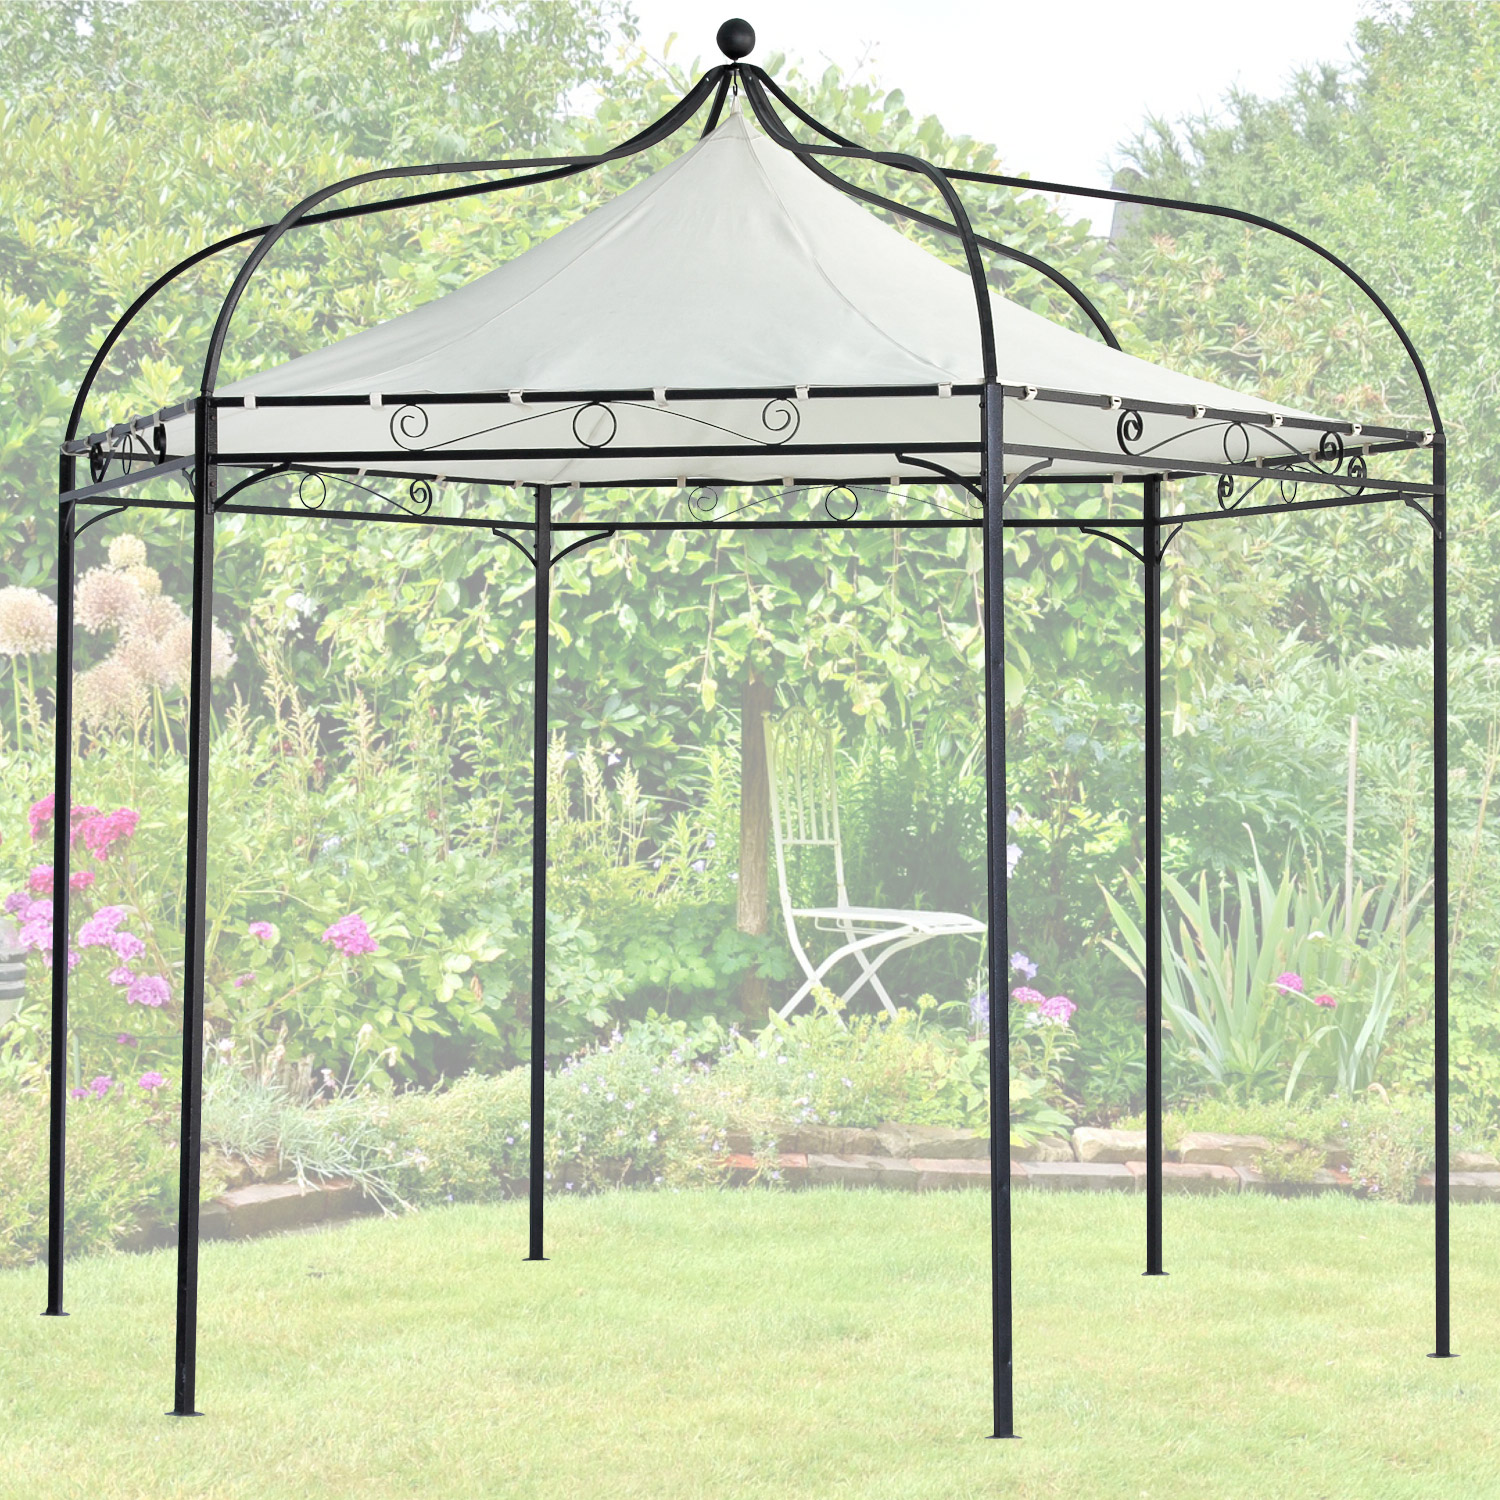 terena metall gartenpavillon 320x280 cm gazebo garten pavillon capri. Black Bedroom Furniture Sets. Home Design Ideas